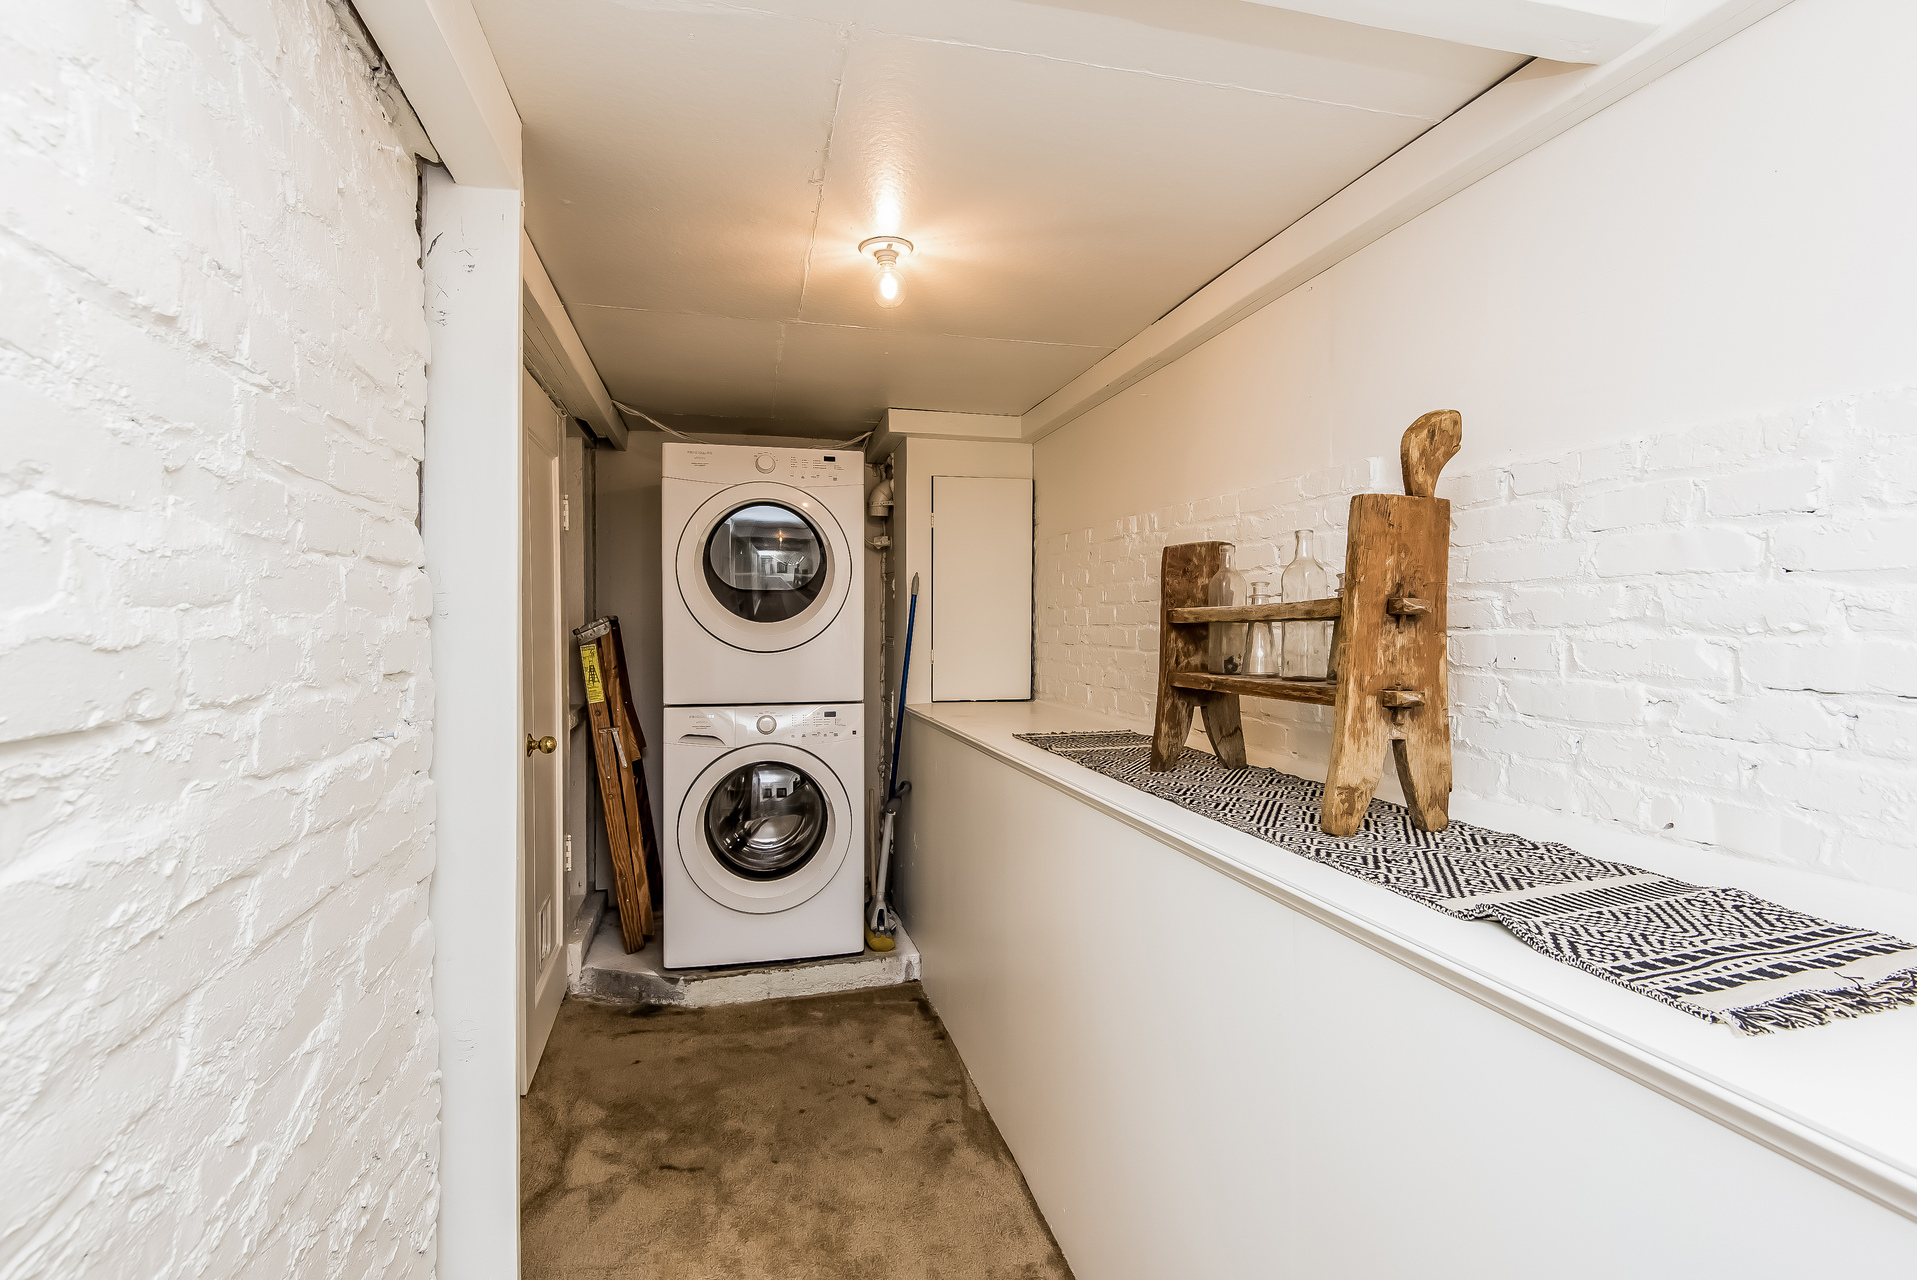 032-Laundry_Room-2860437-medium.jpg